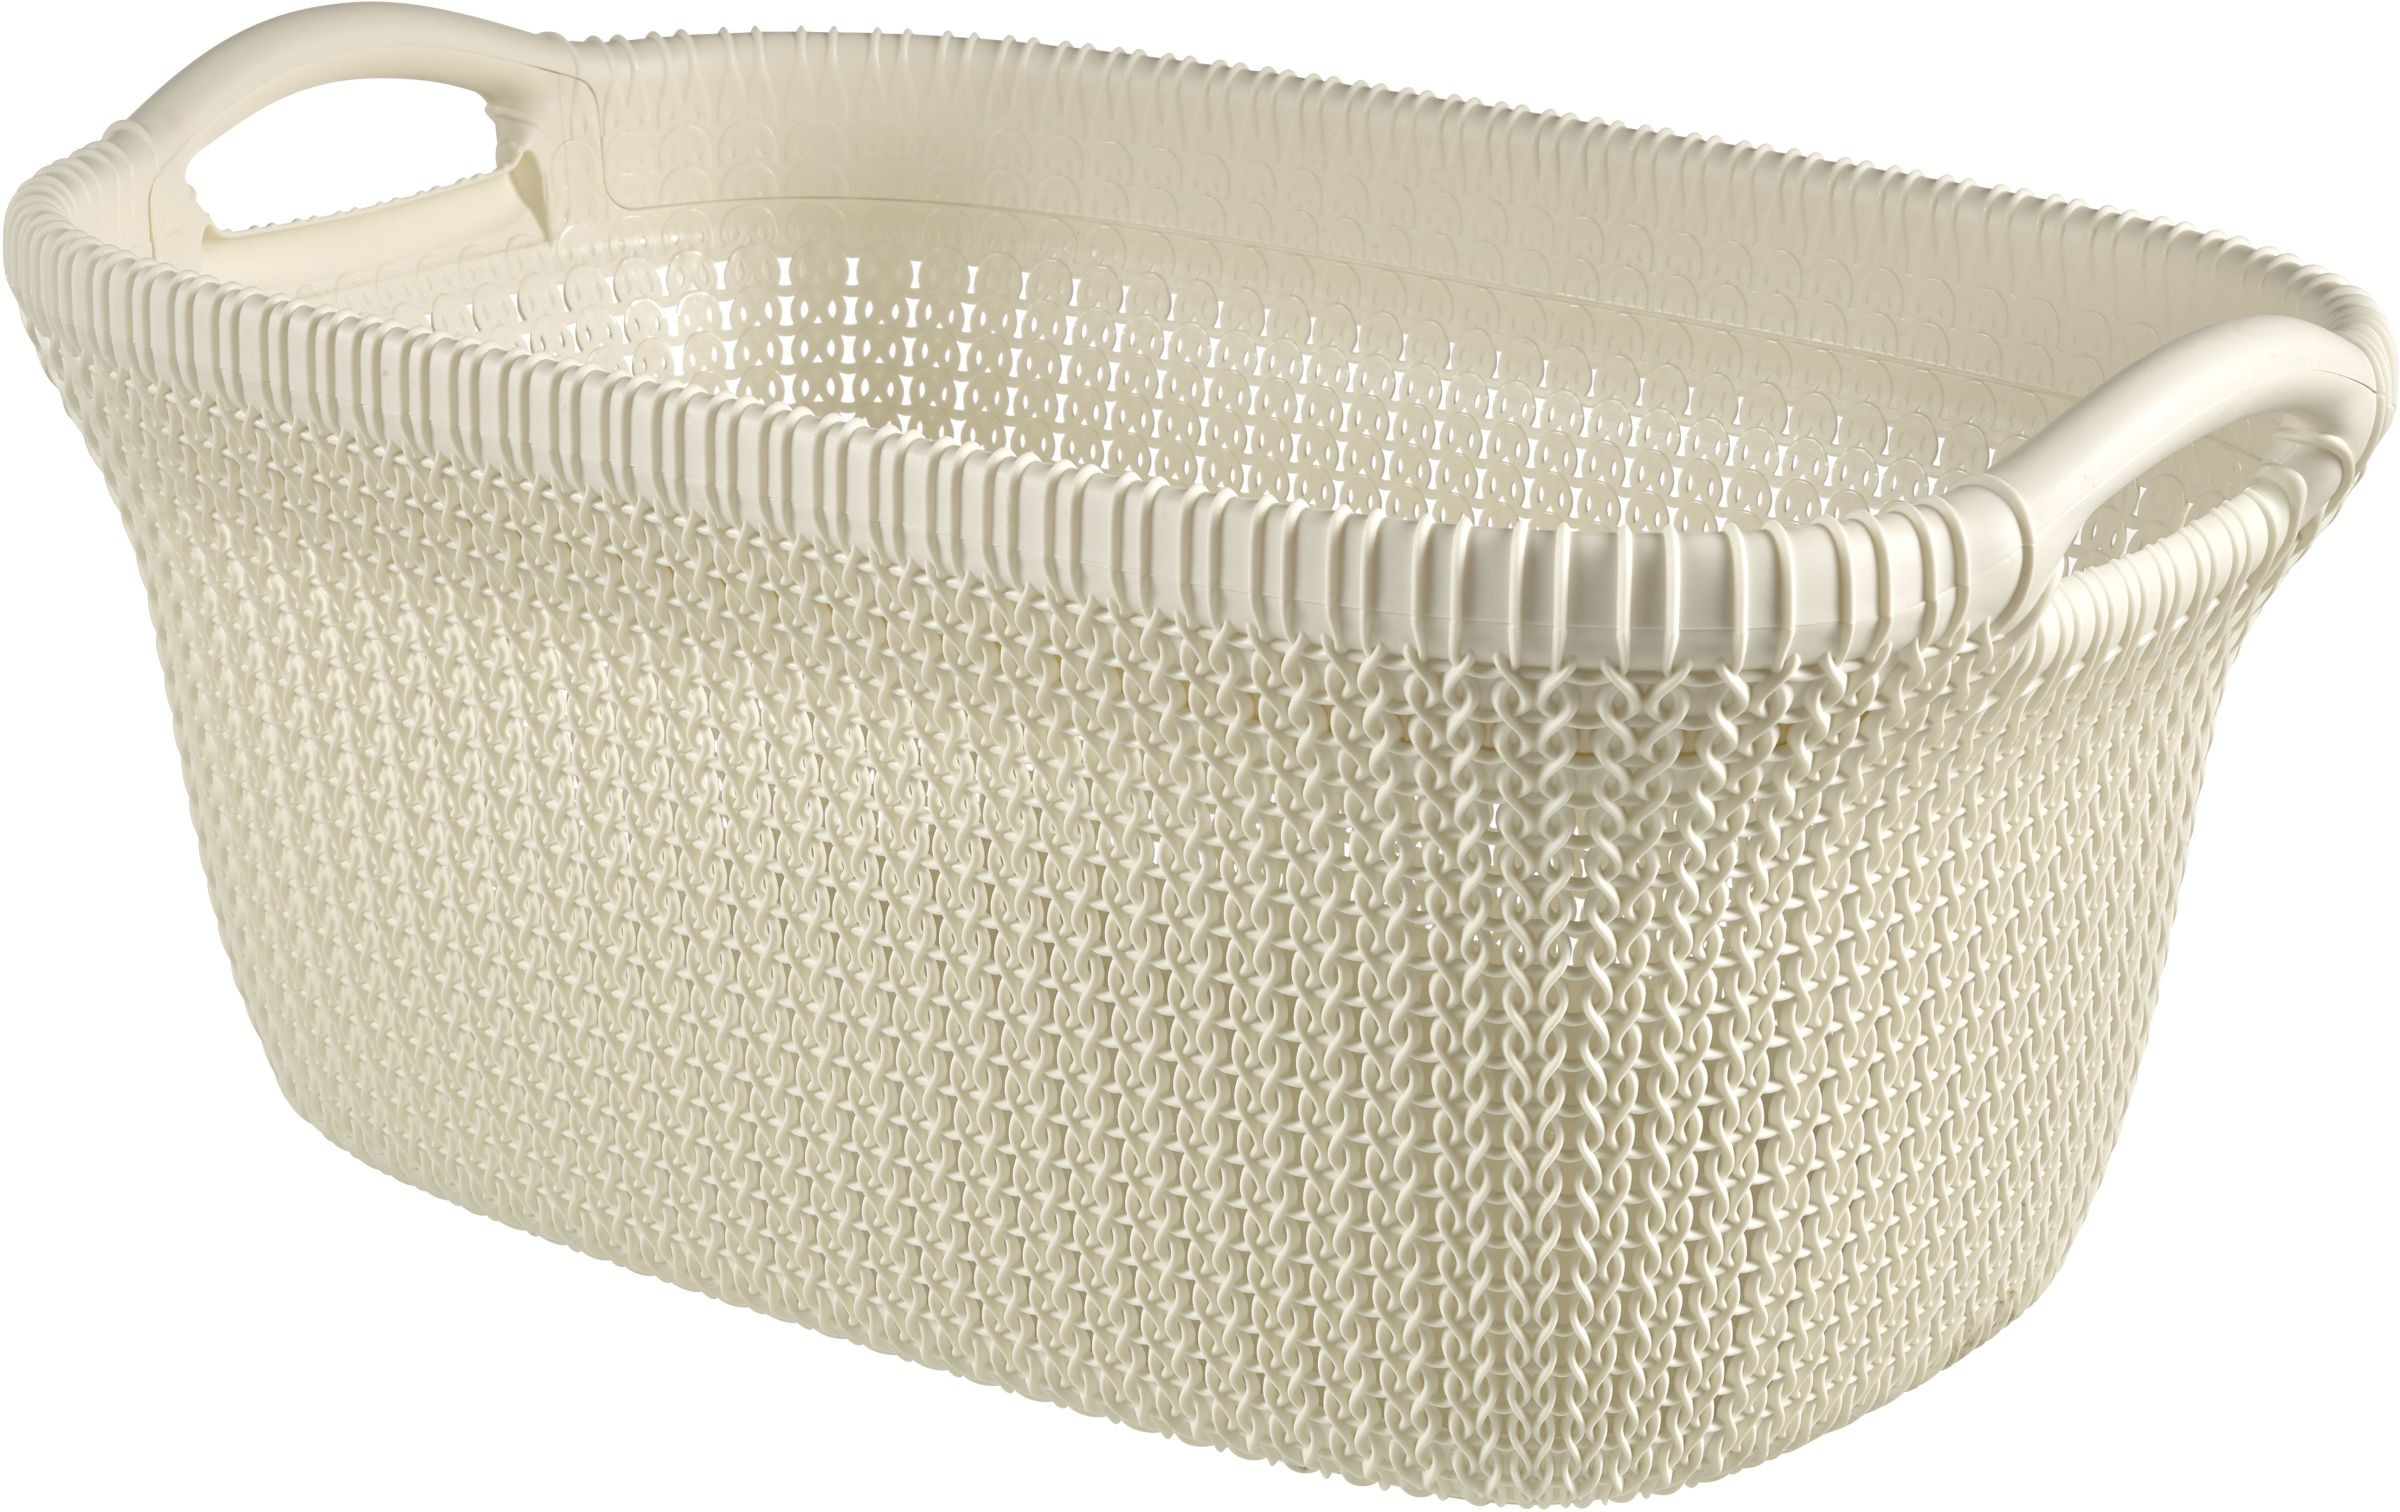 Smalle Hoge Wasmand Curver Knit Wasmand